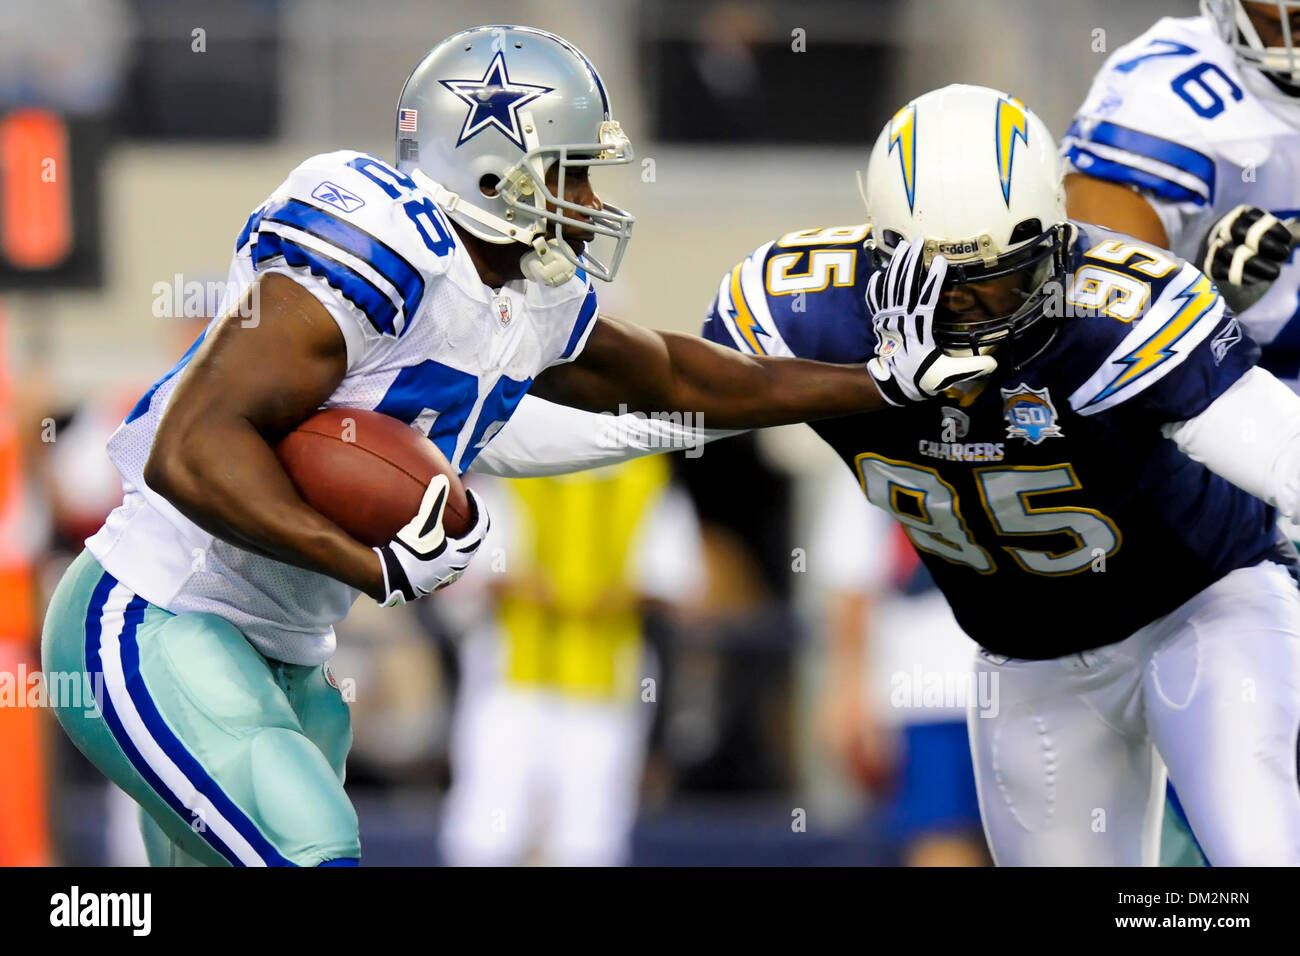 Dallas Cowboys Running Back Felix Jones 28 Stiff Arms San Diego Chargers Linebacker Shaun Phillips 95 In The NFL Football Game Between